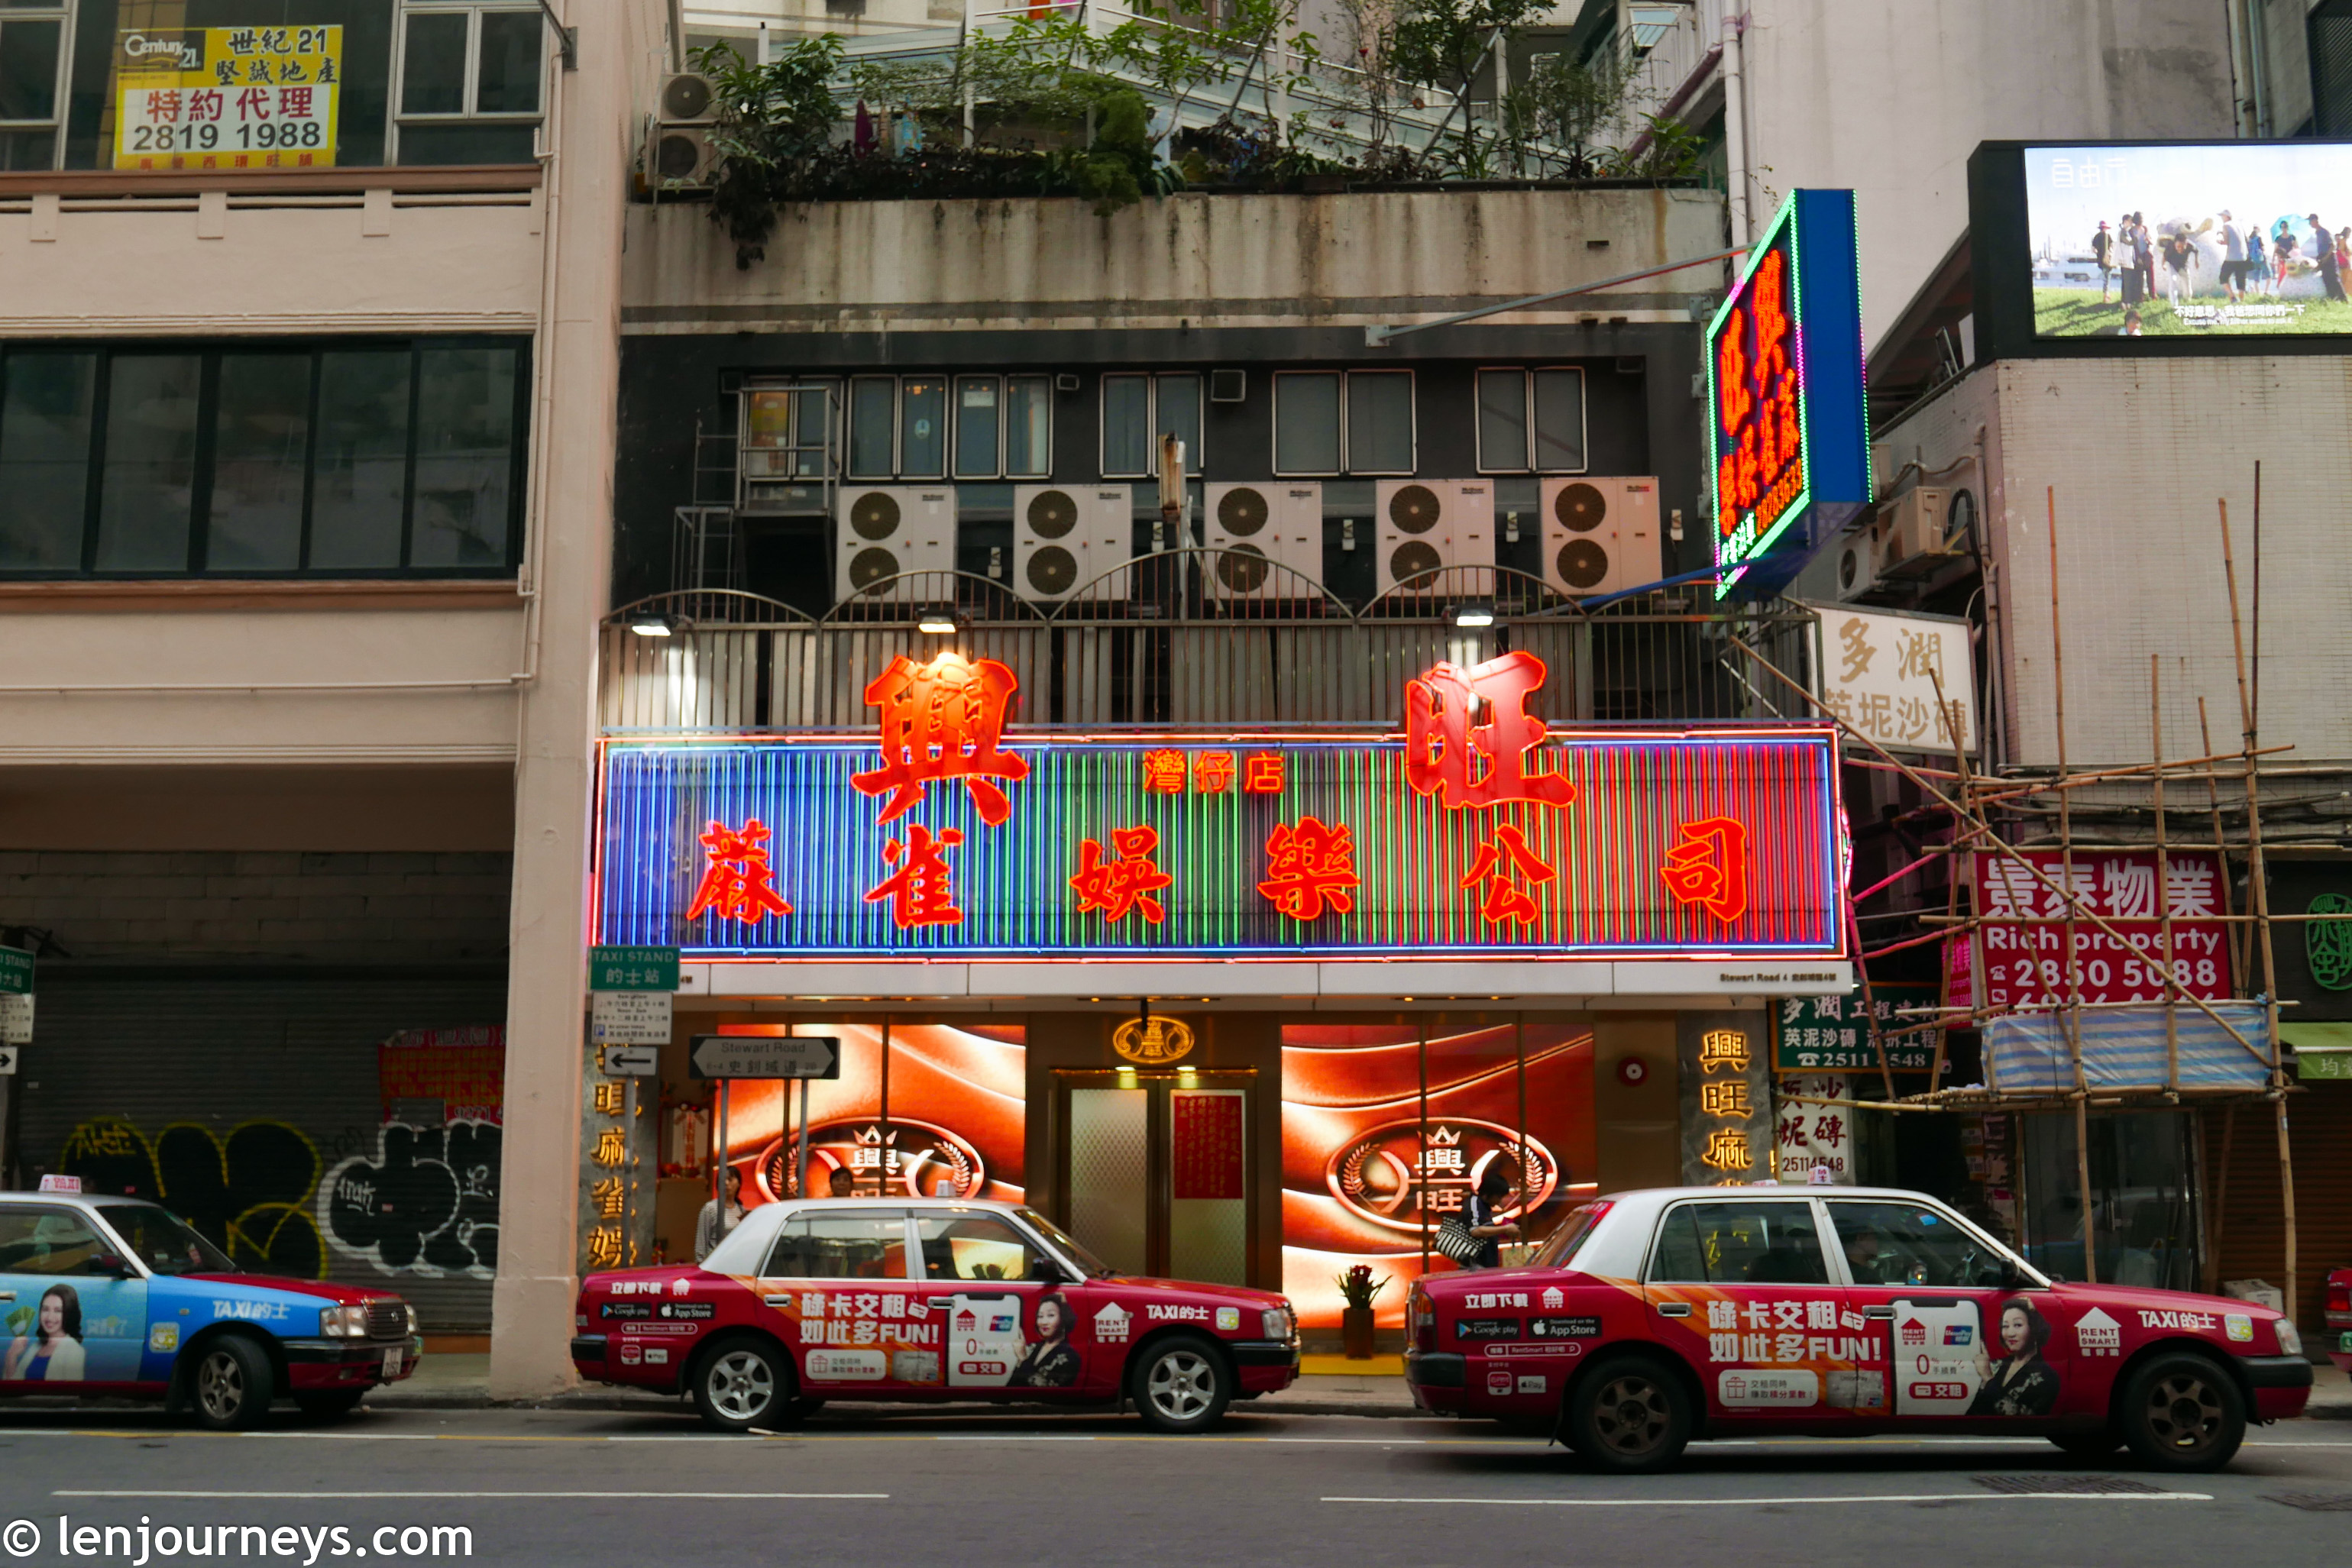 Taxi packing in front of a building in Hong Kong